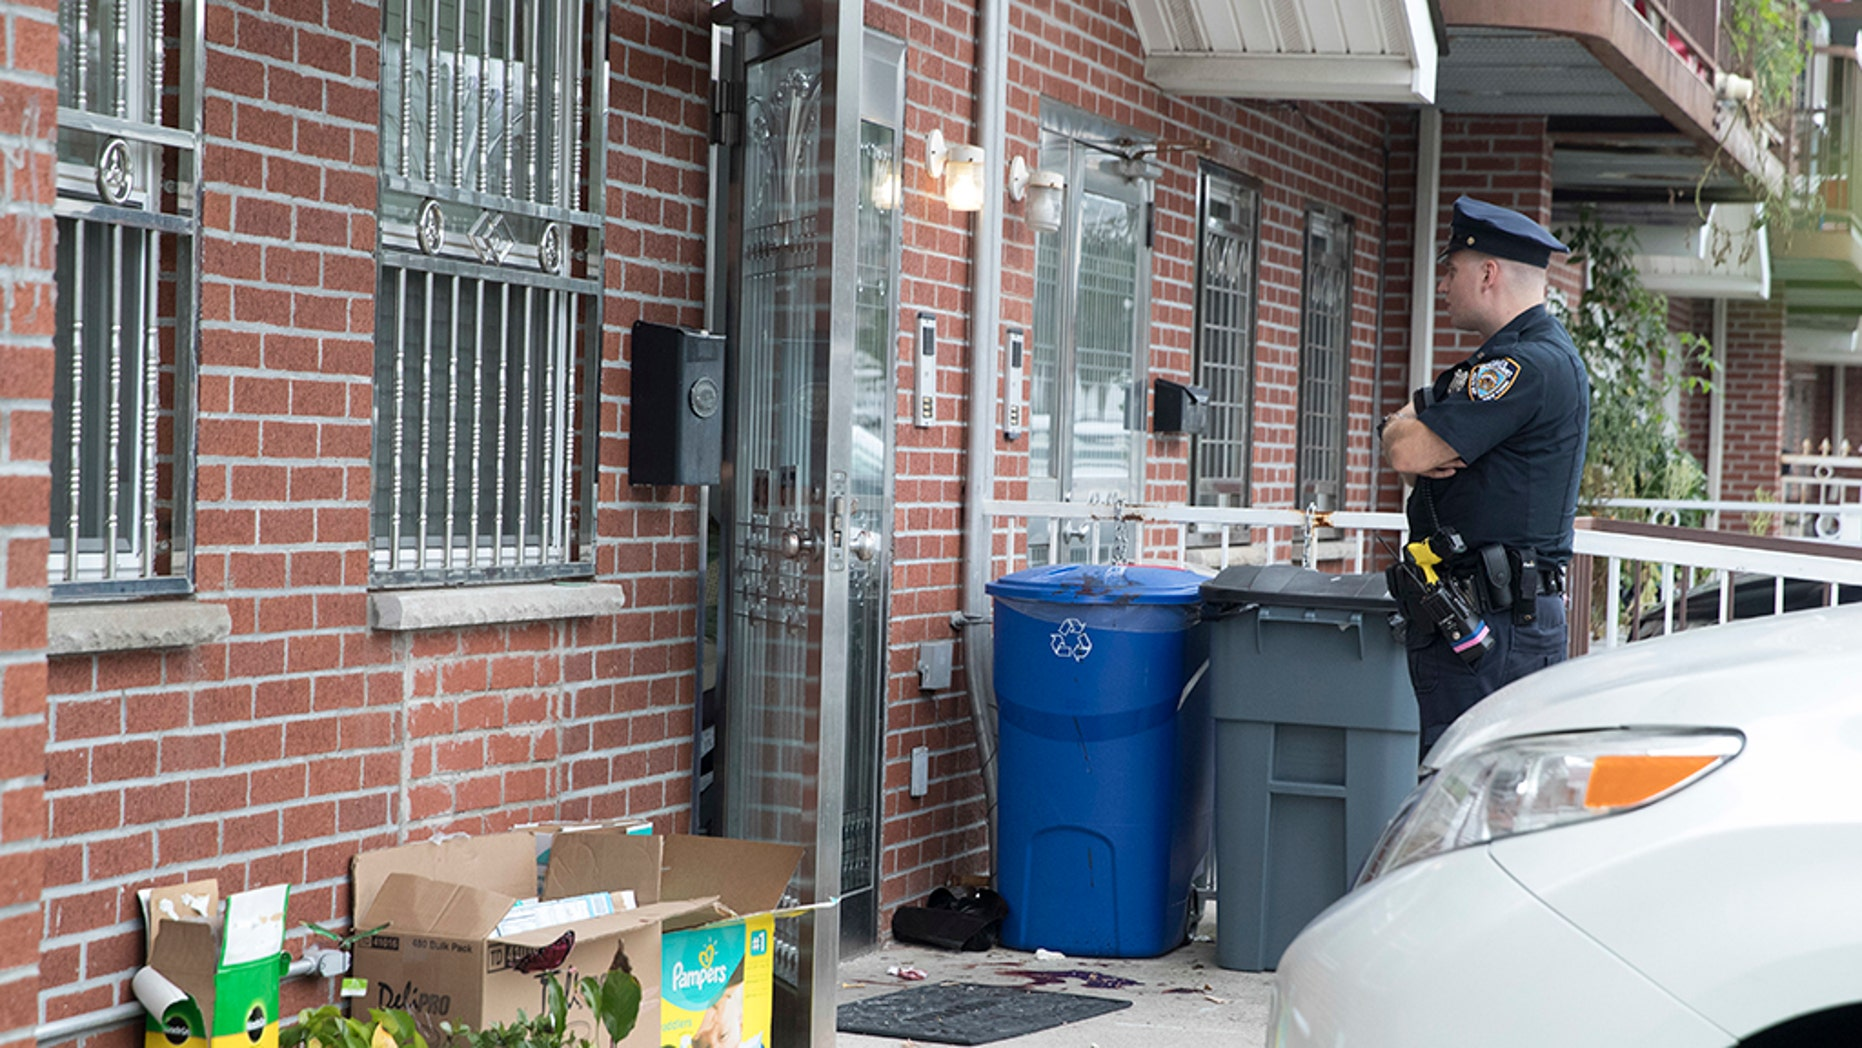 A police officer stands guard at the house were five people were stabbed overnight, Friday, Sept. 21, 2018, in New York.